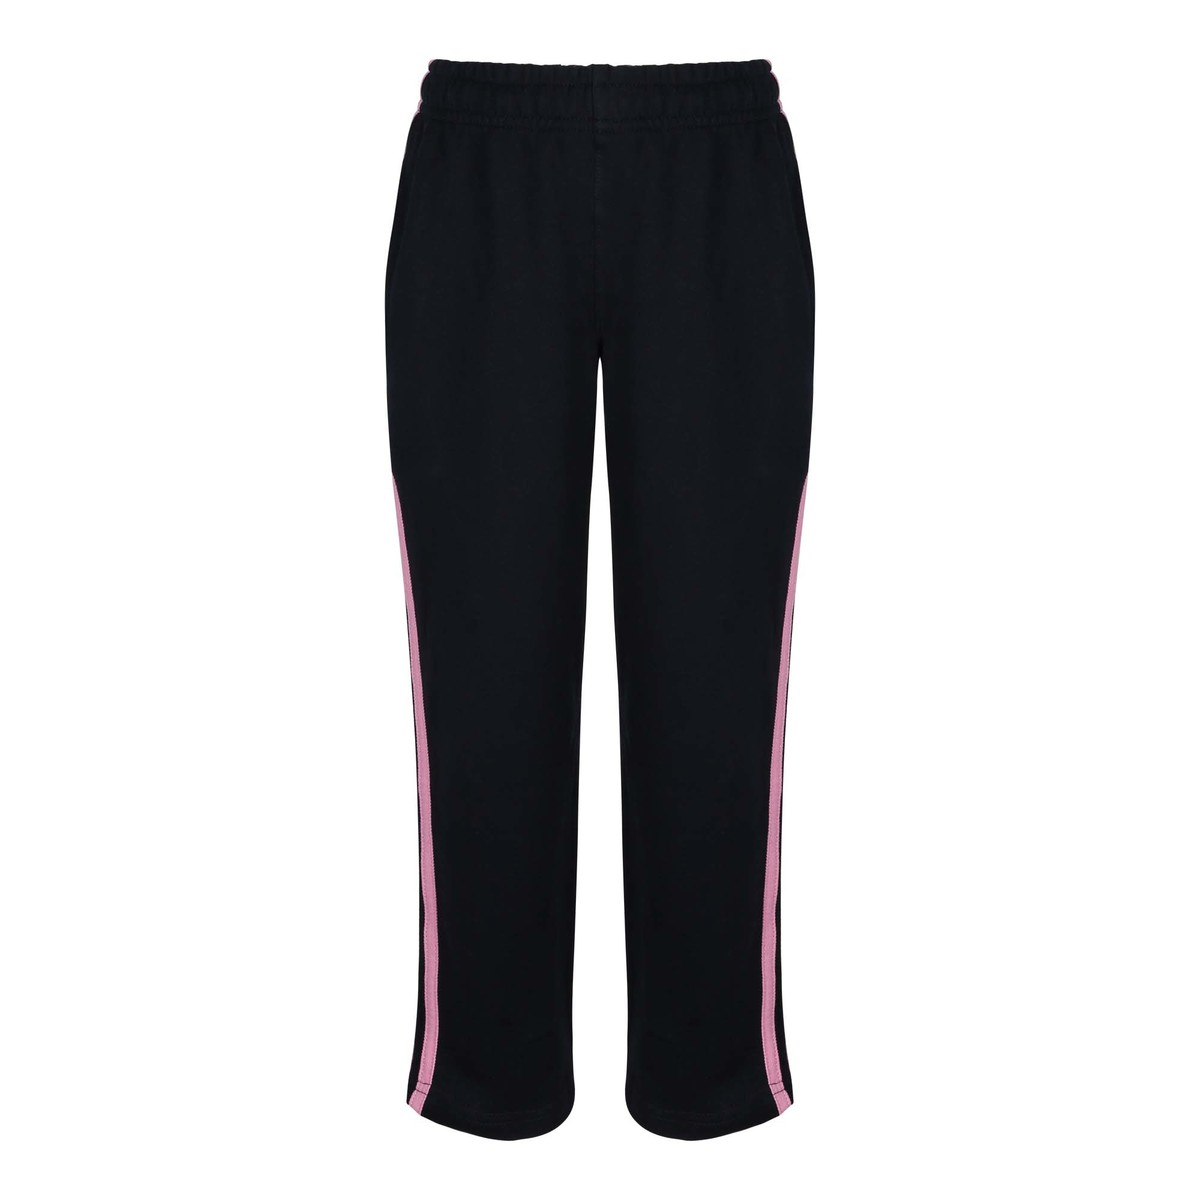 Emirates School Uniform Girls Sports Trouser Cycle1 10-11 Y